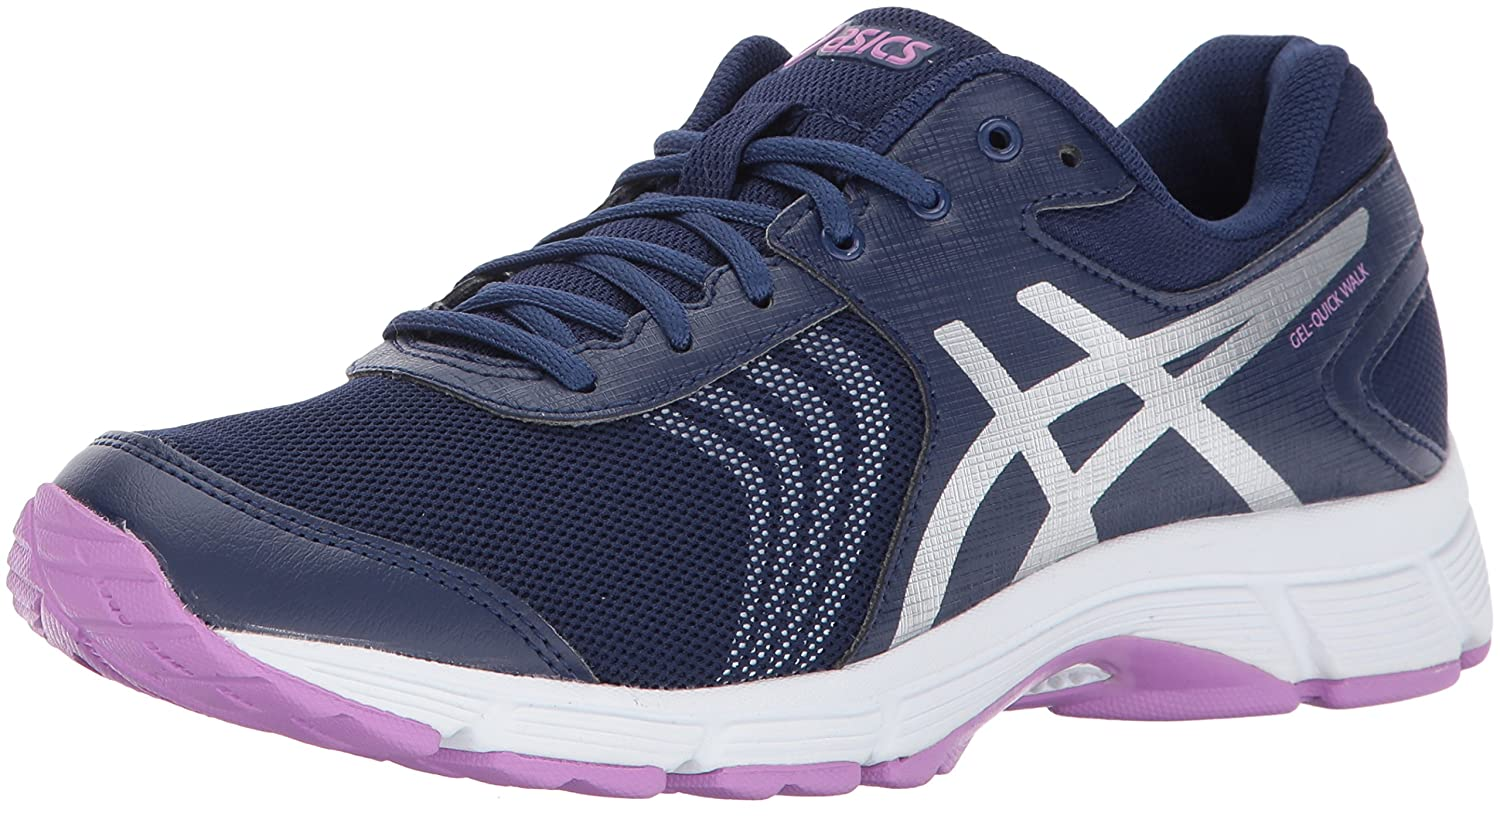 ASICS Women's Gel-Quickwalk 3 Walking Shoe B01N07G7EO 10 B(M) US|Indigo Blue/Silver/Violet